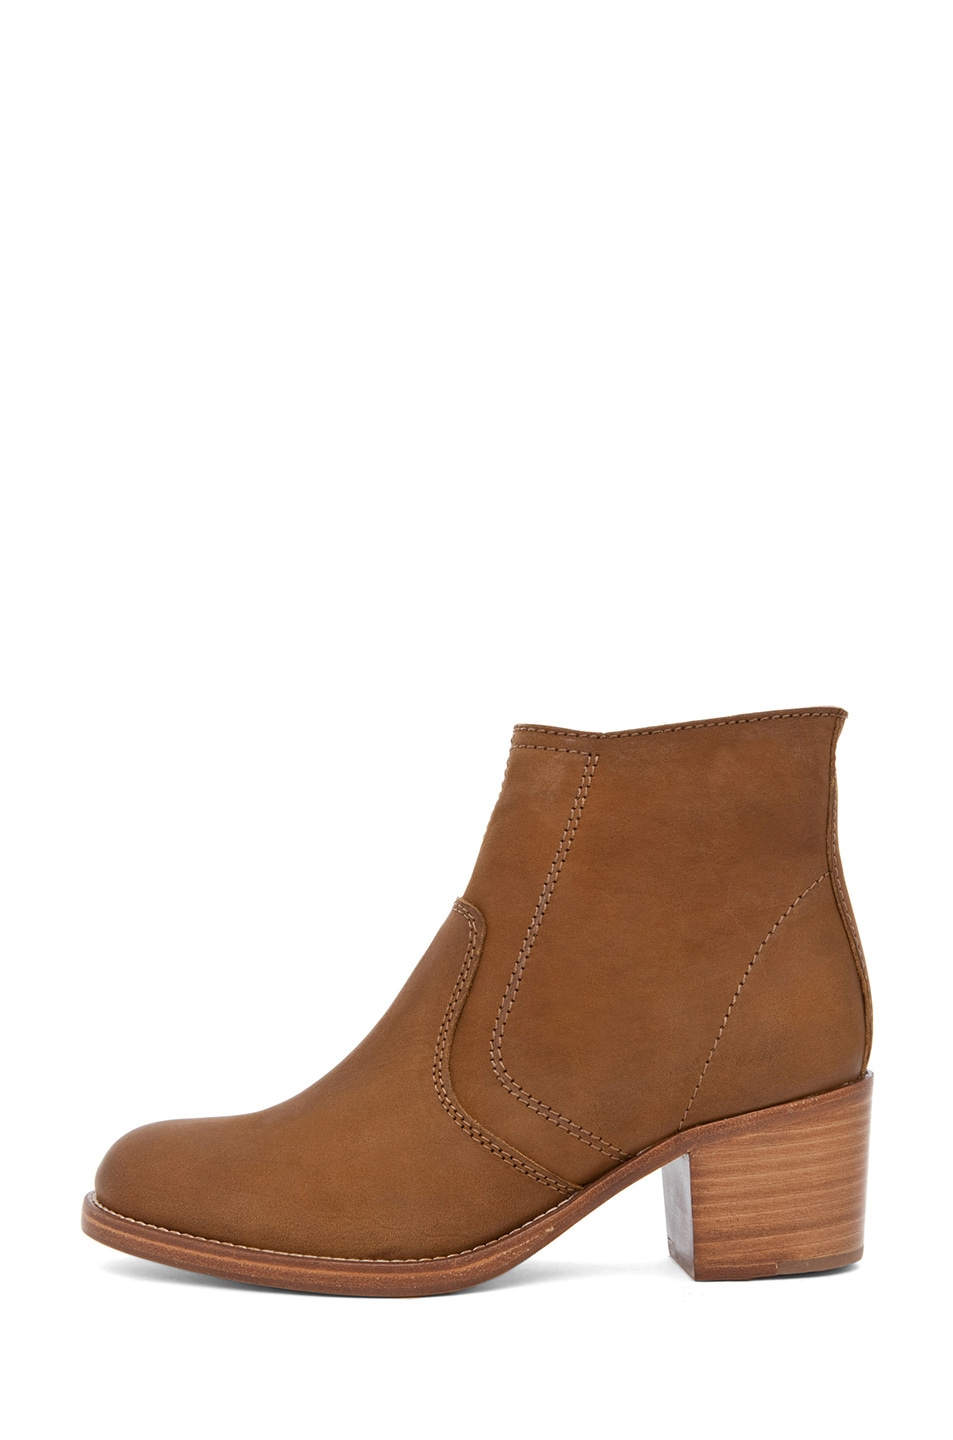 Image 1 of A.P.C. Camarguaise Boot in Caramel